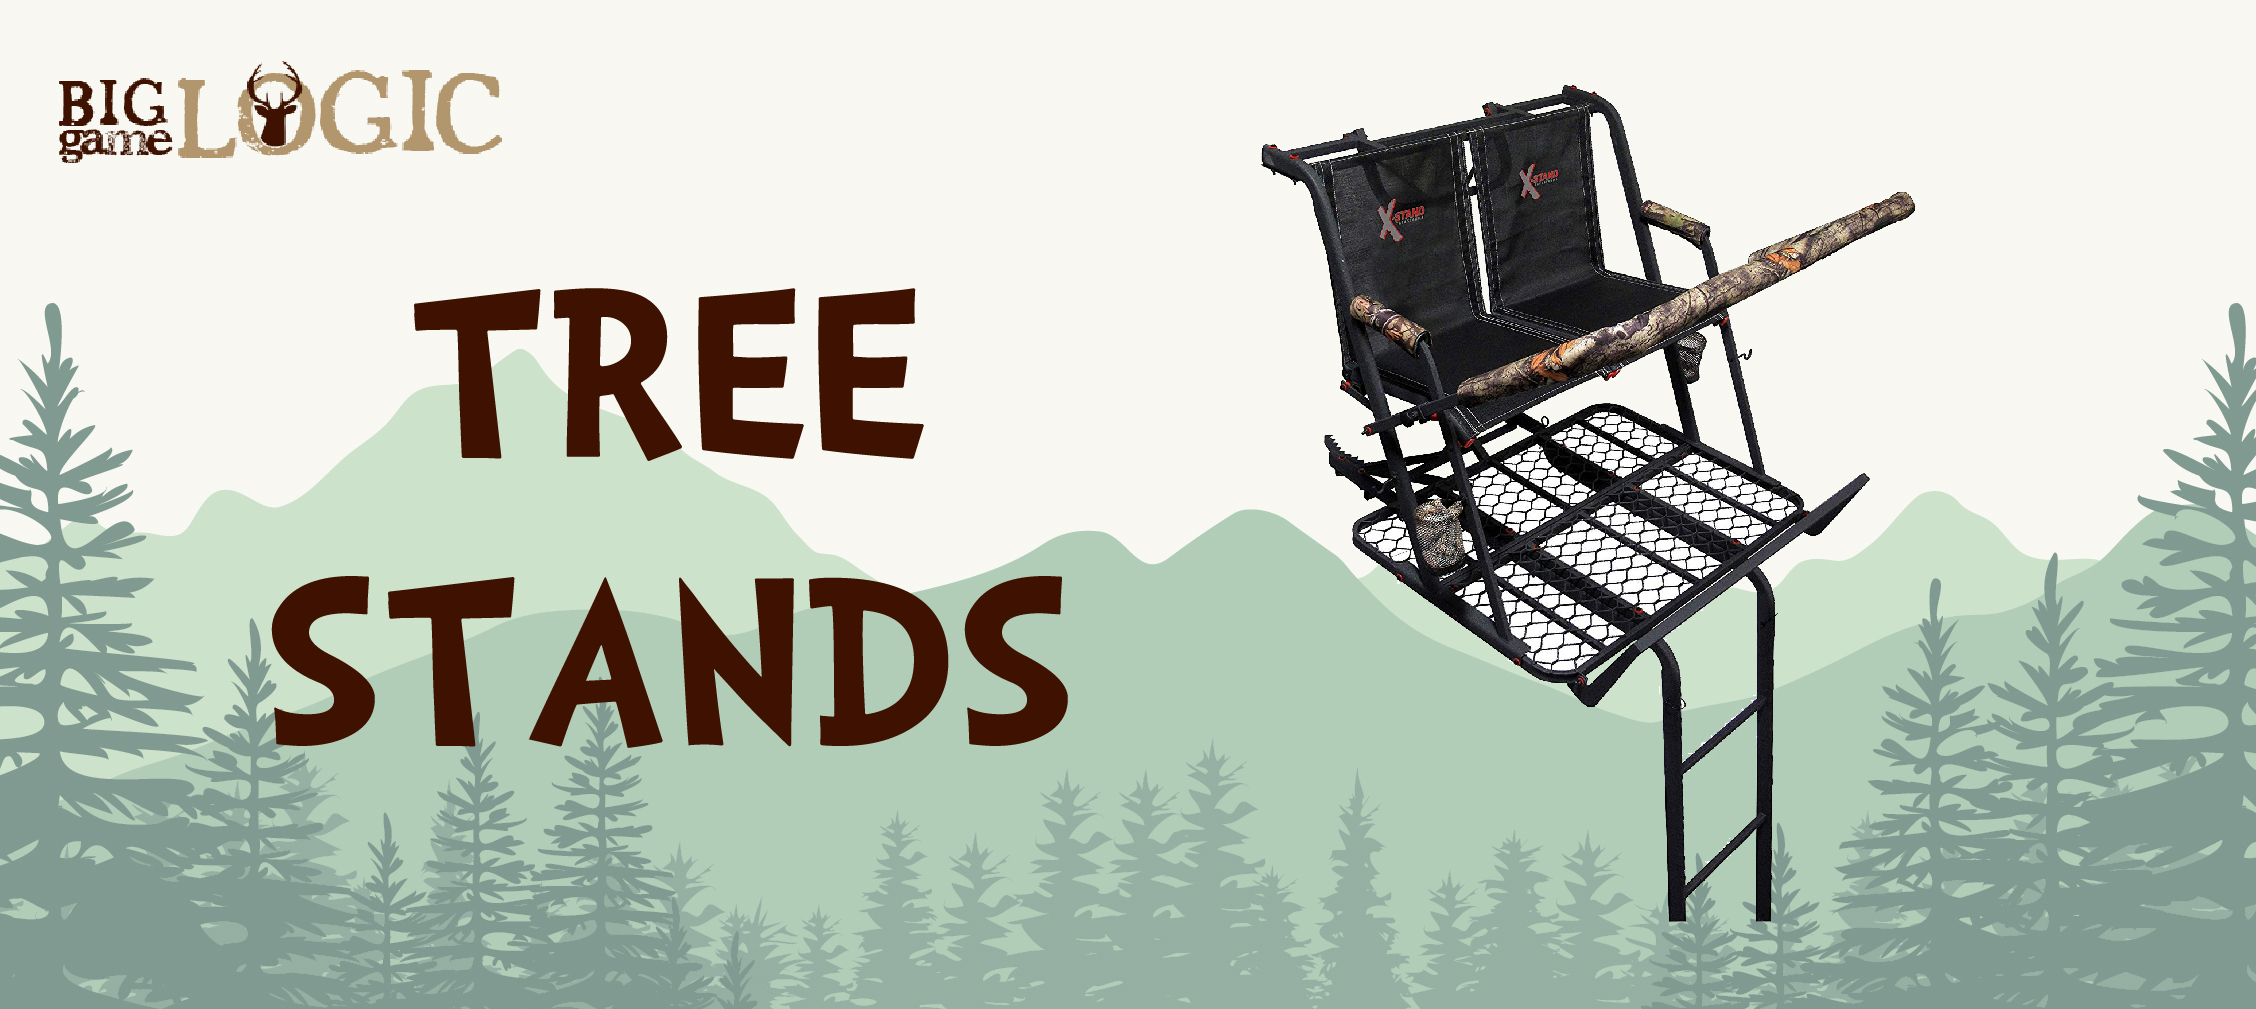 Deer Stand Placement Diagrams Best Tree Stands Of 2019 Complete Guide Big Game Logic